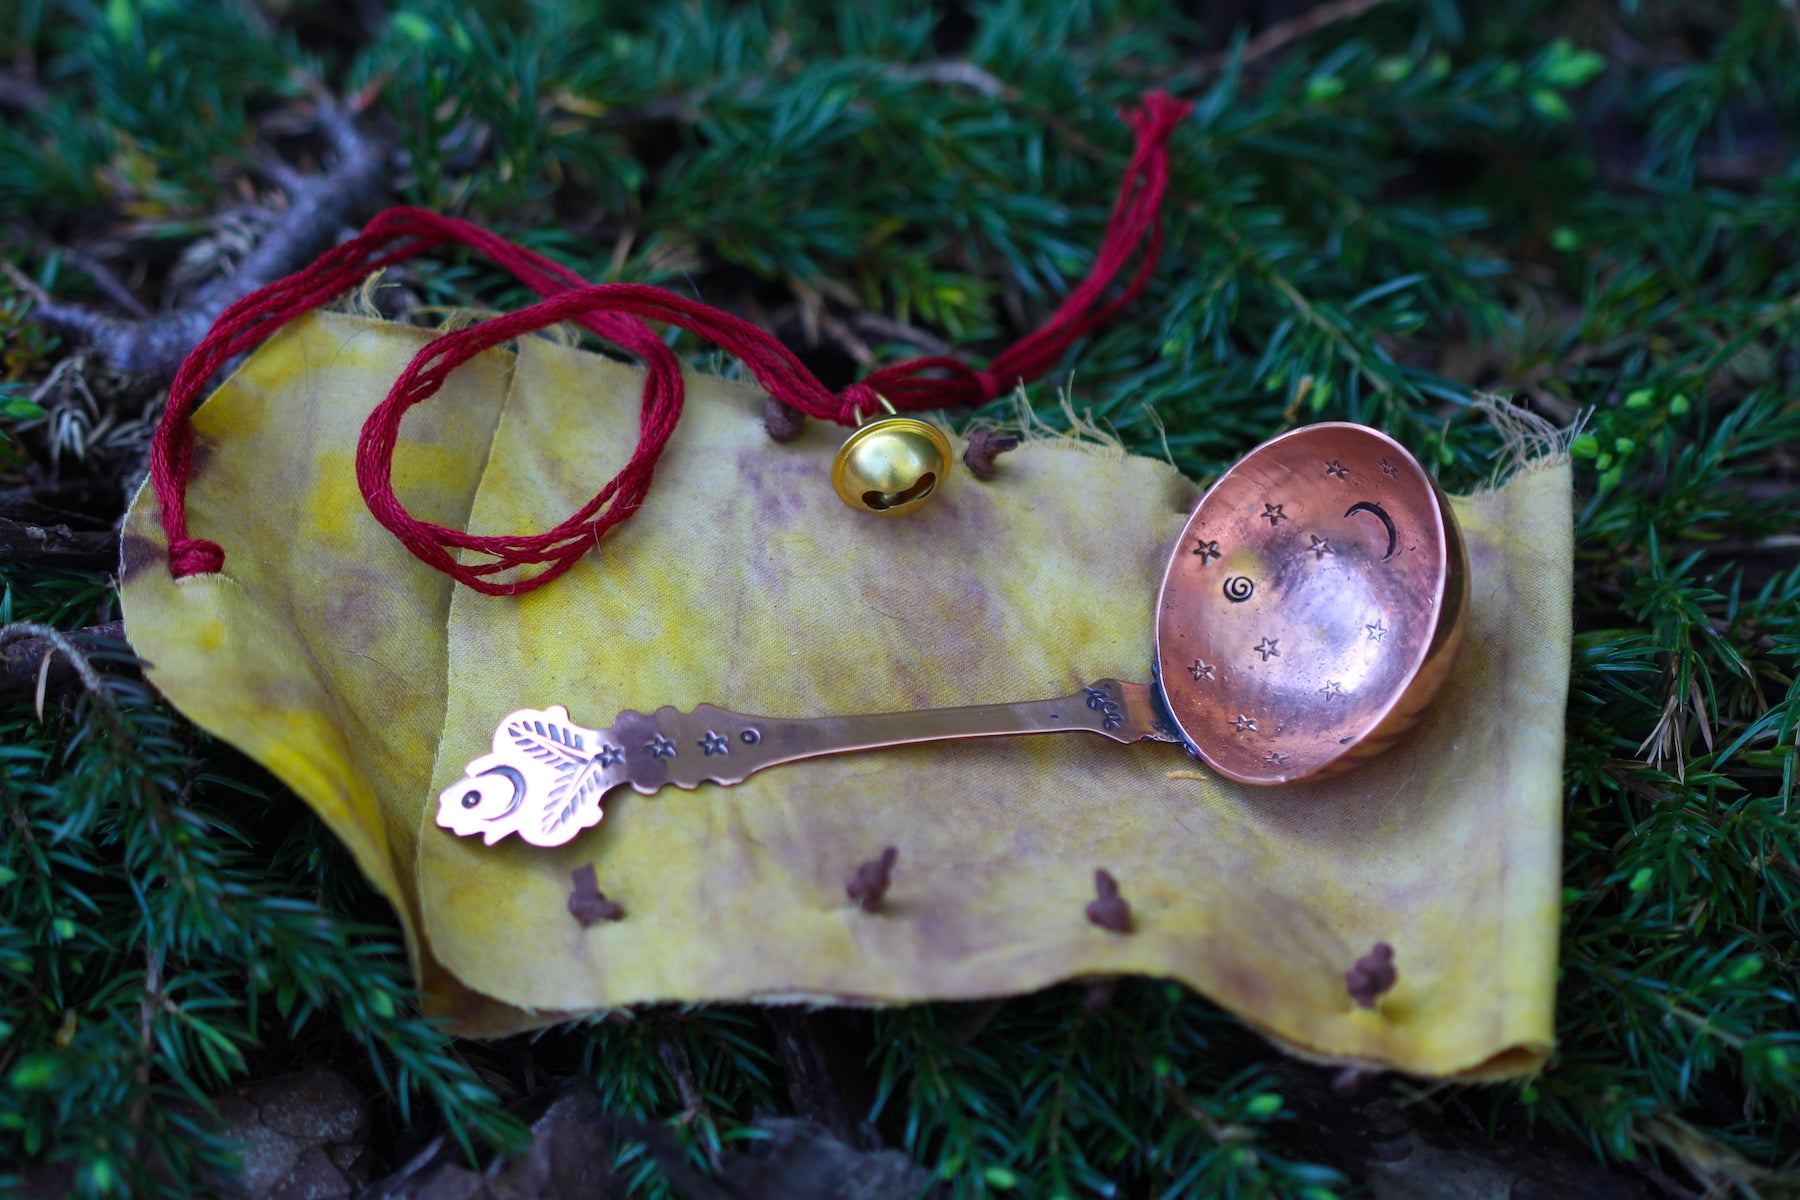 WITCHES SPOON No. 1 - Handmade Copper Spoon